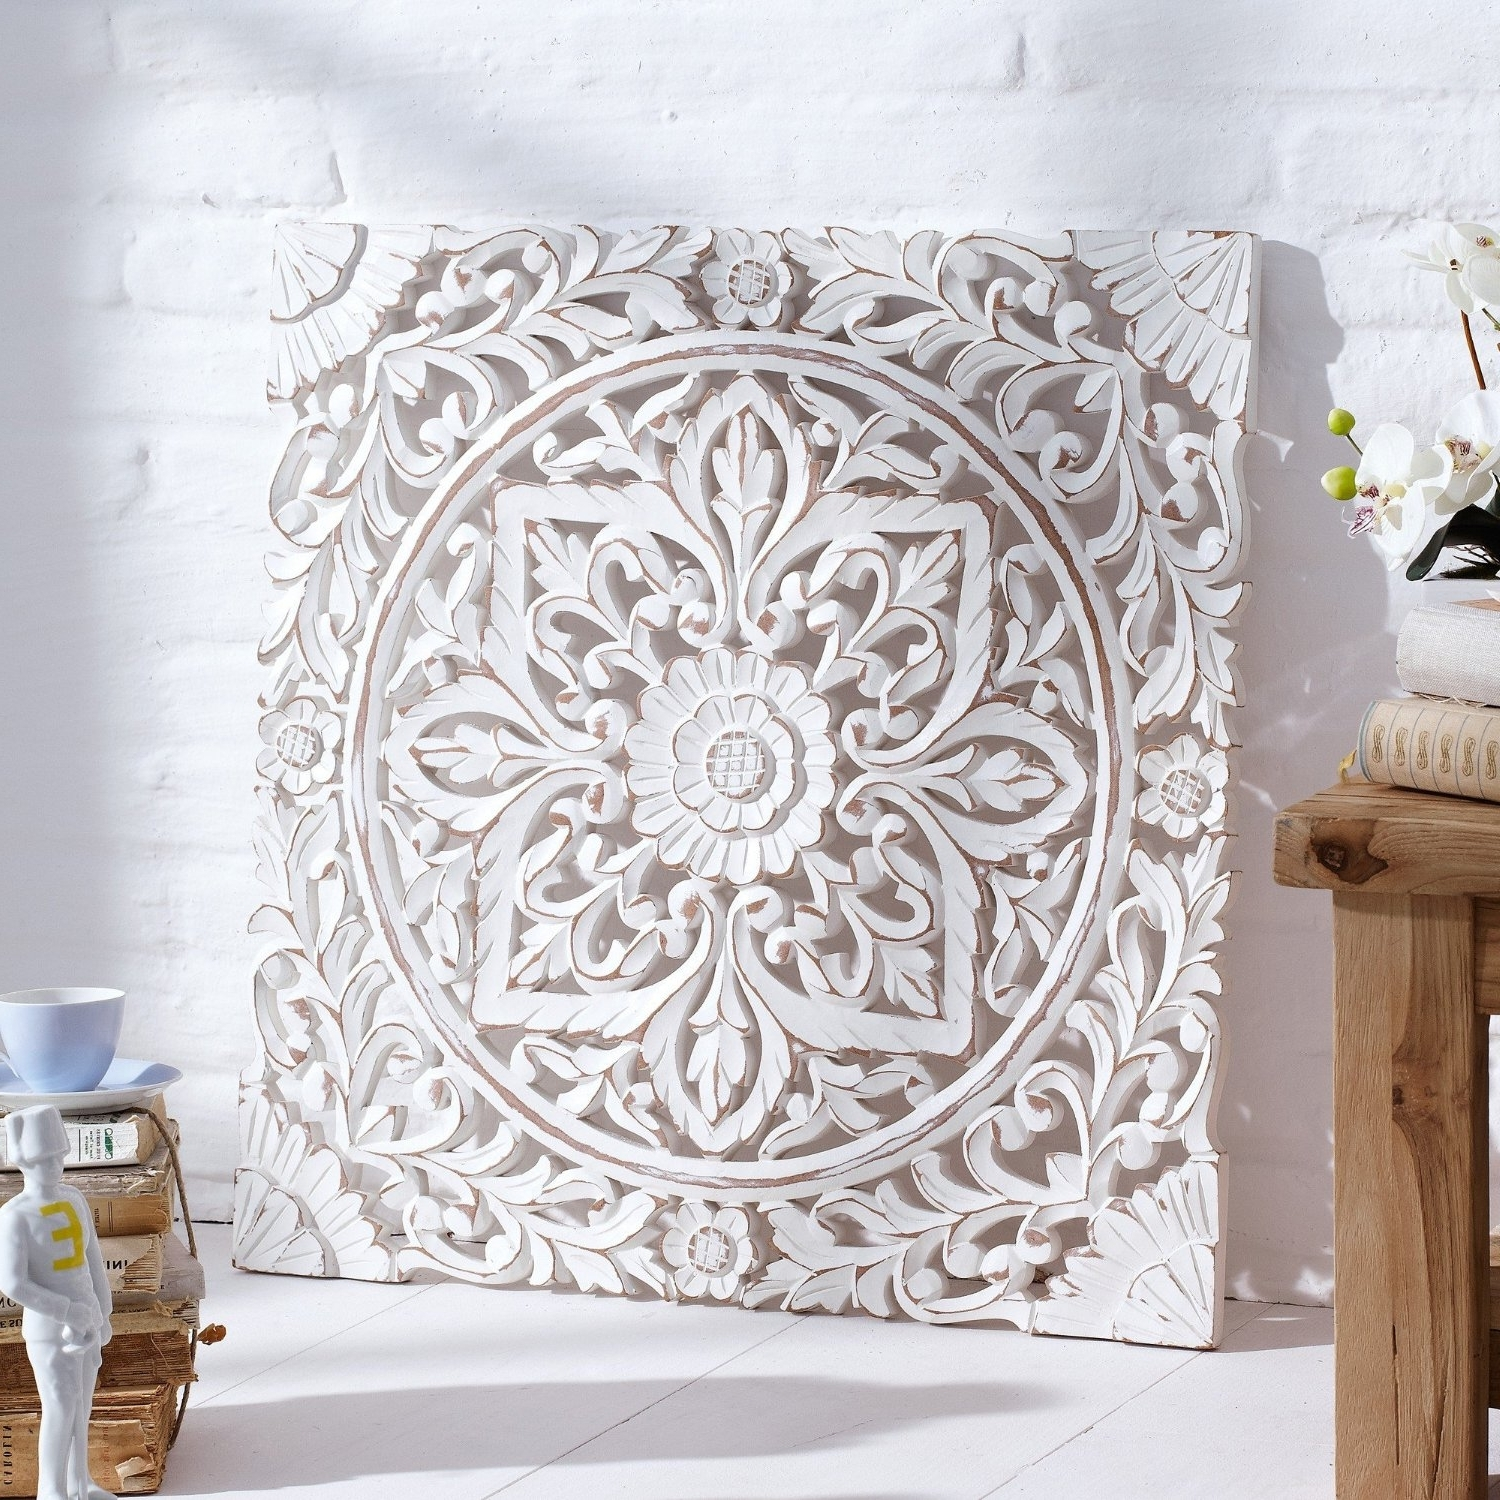 Wall Decor Wood Panel 15 The Best White Wooden Wall Art